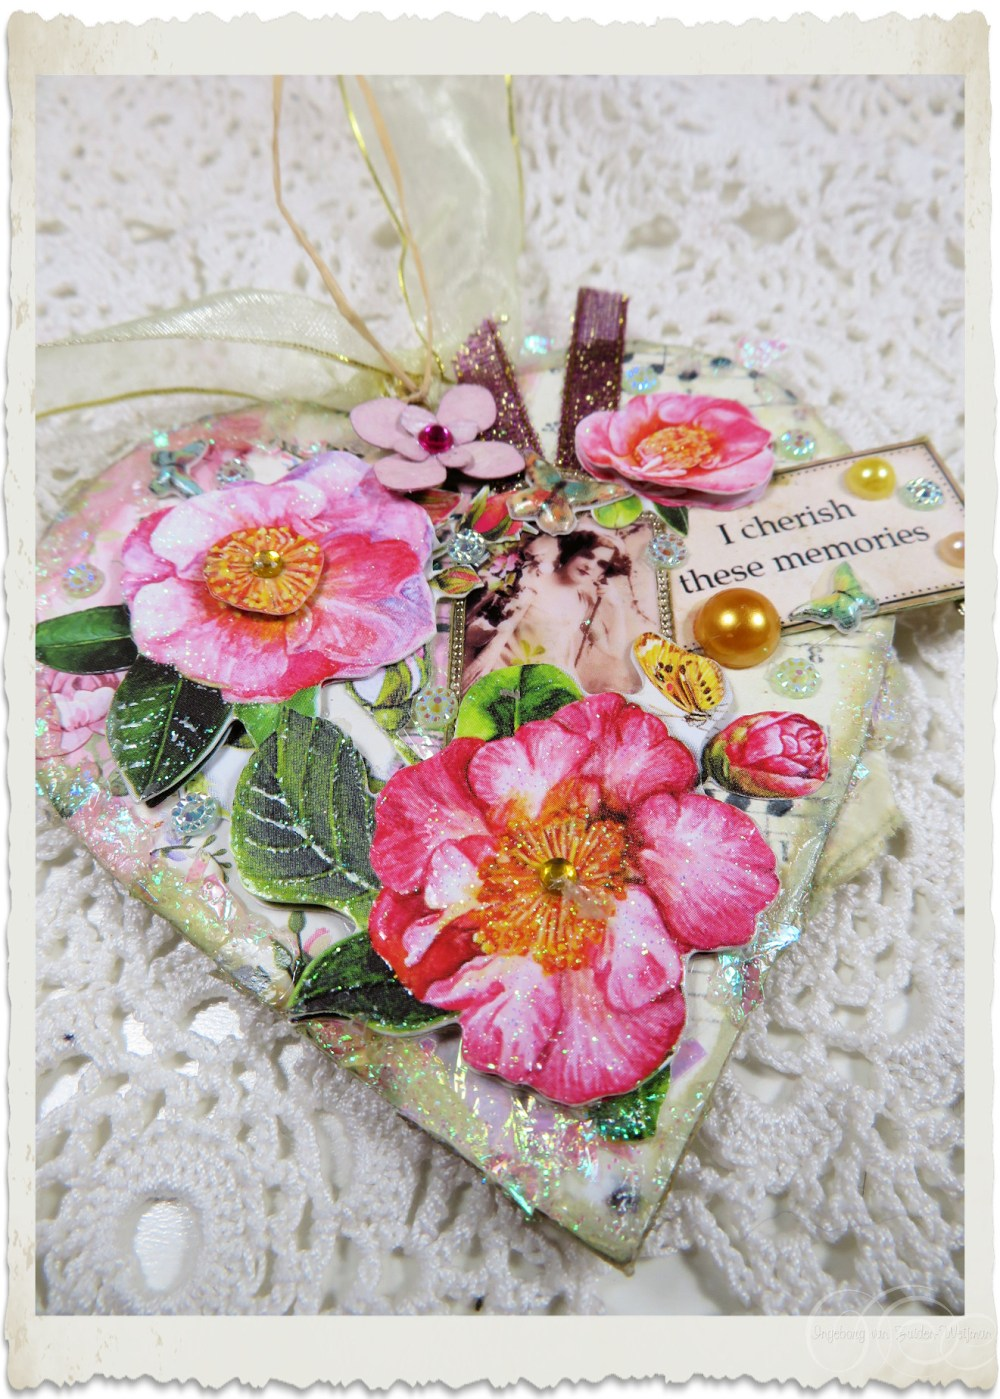 Details of pink roses on handmade heart hanger by Ingeborg van Zuiden